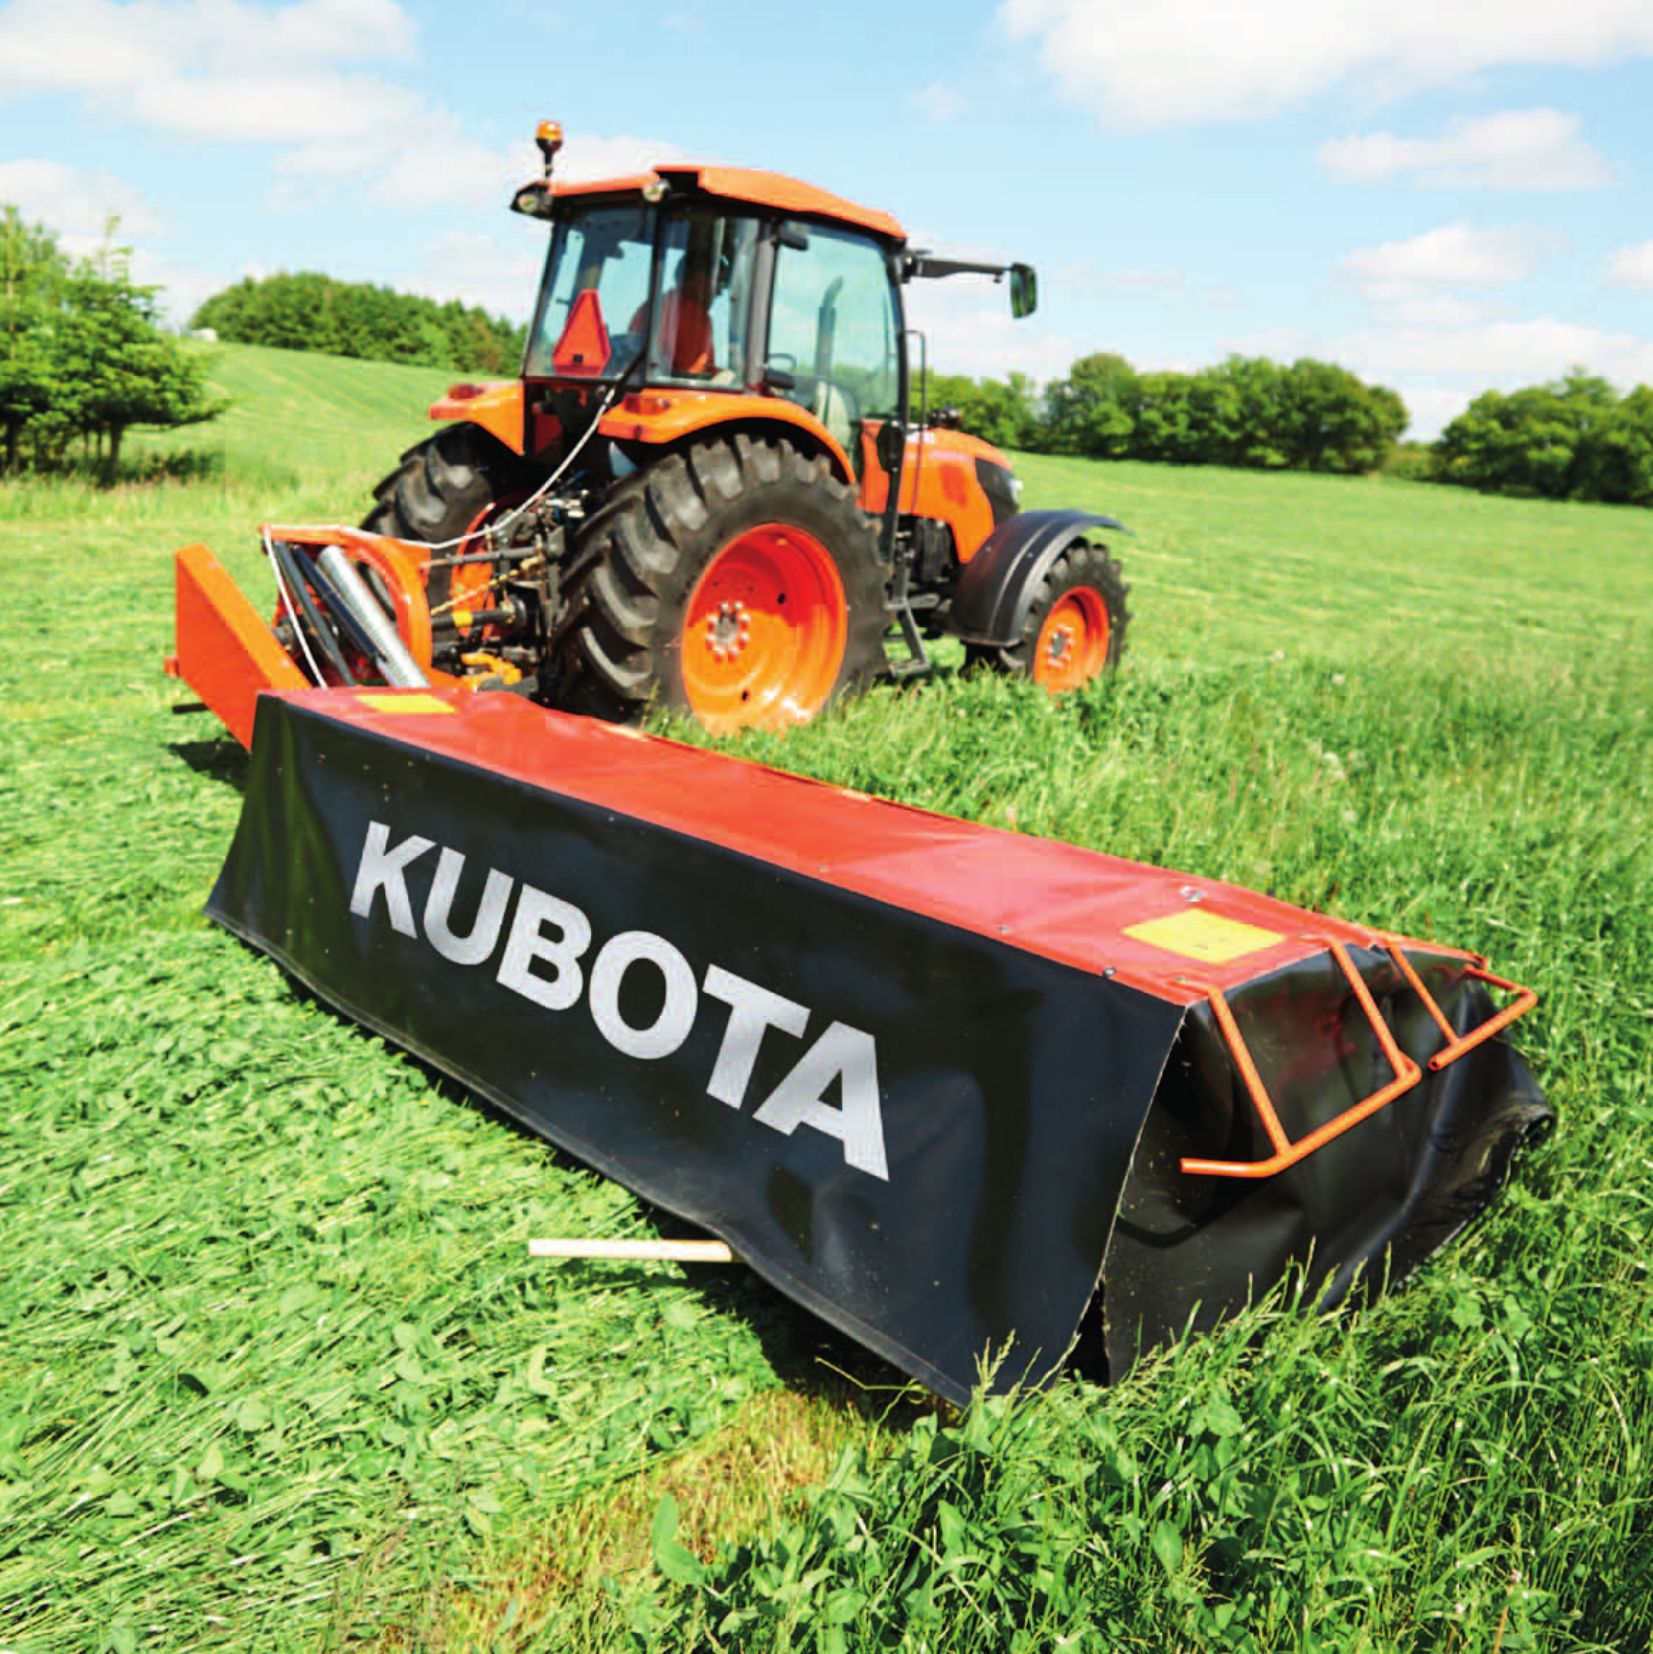 kubota dm disc mowers new for 2014 southwest ag kubota lineup pinterest. Black Bedroom Furniture Sets. Home Design Ideas